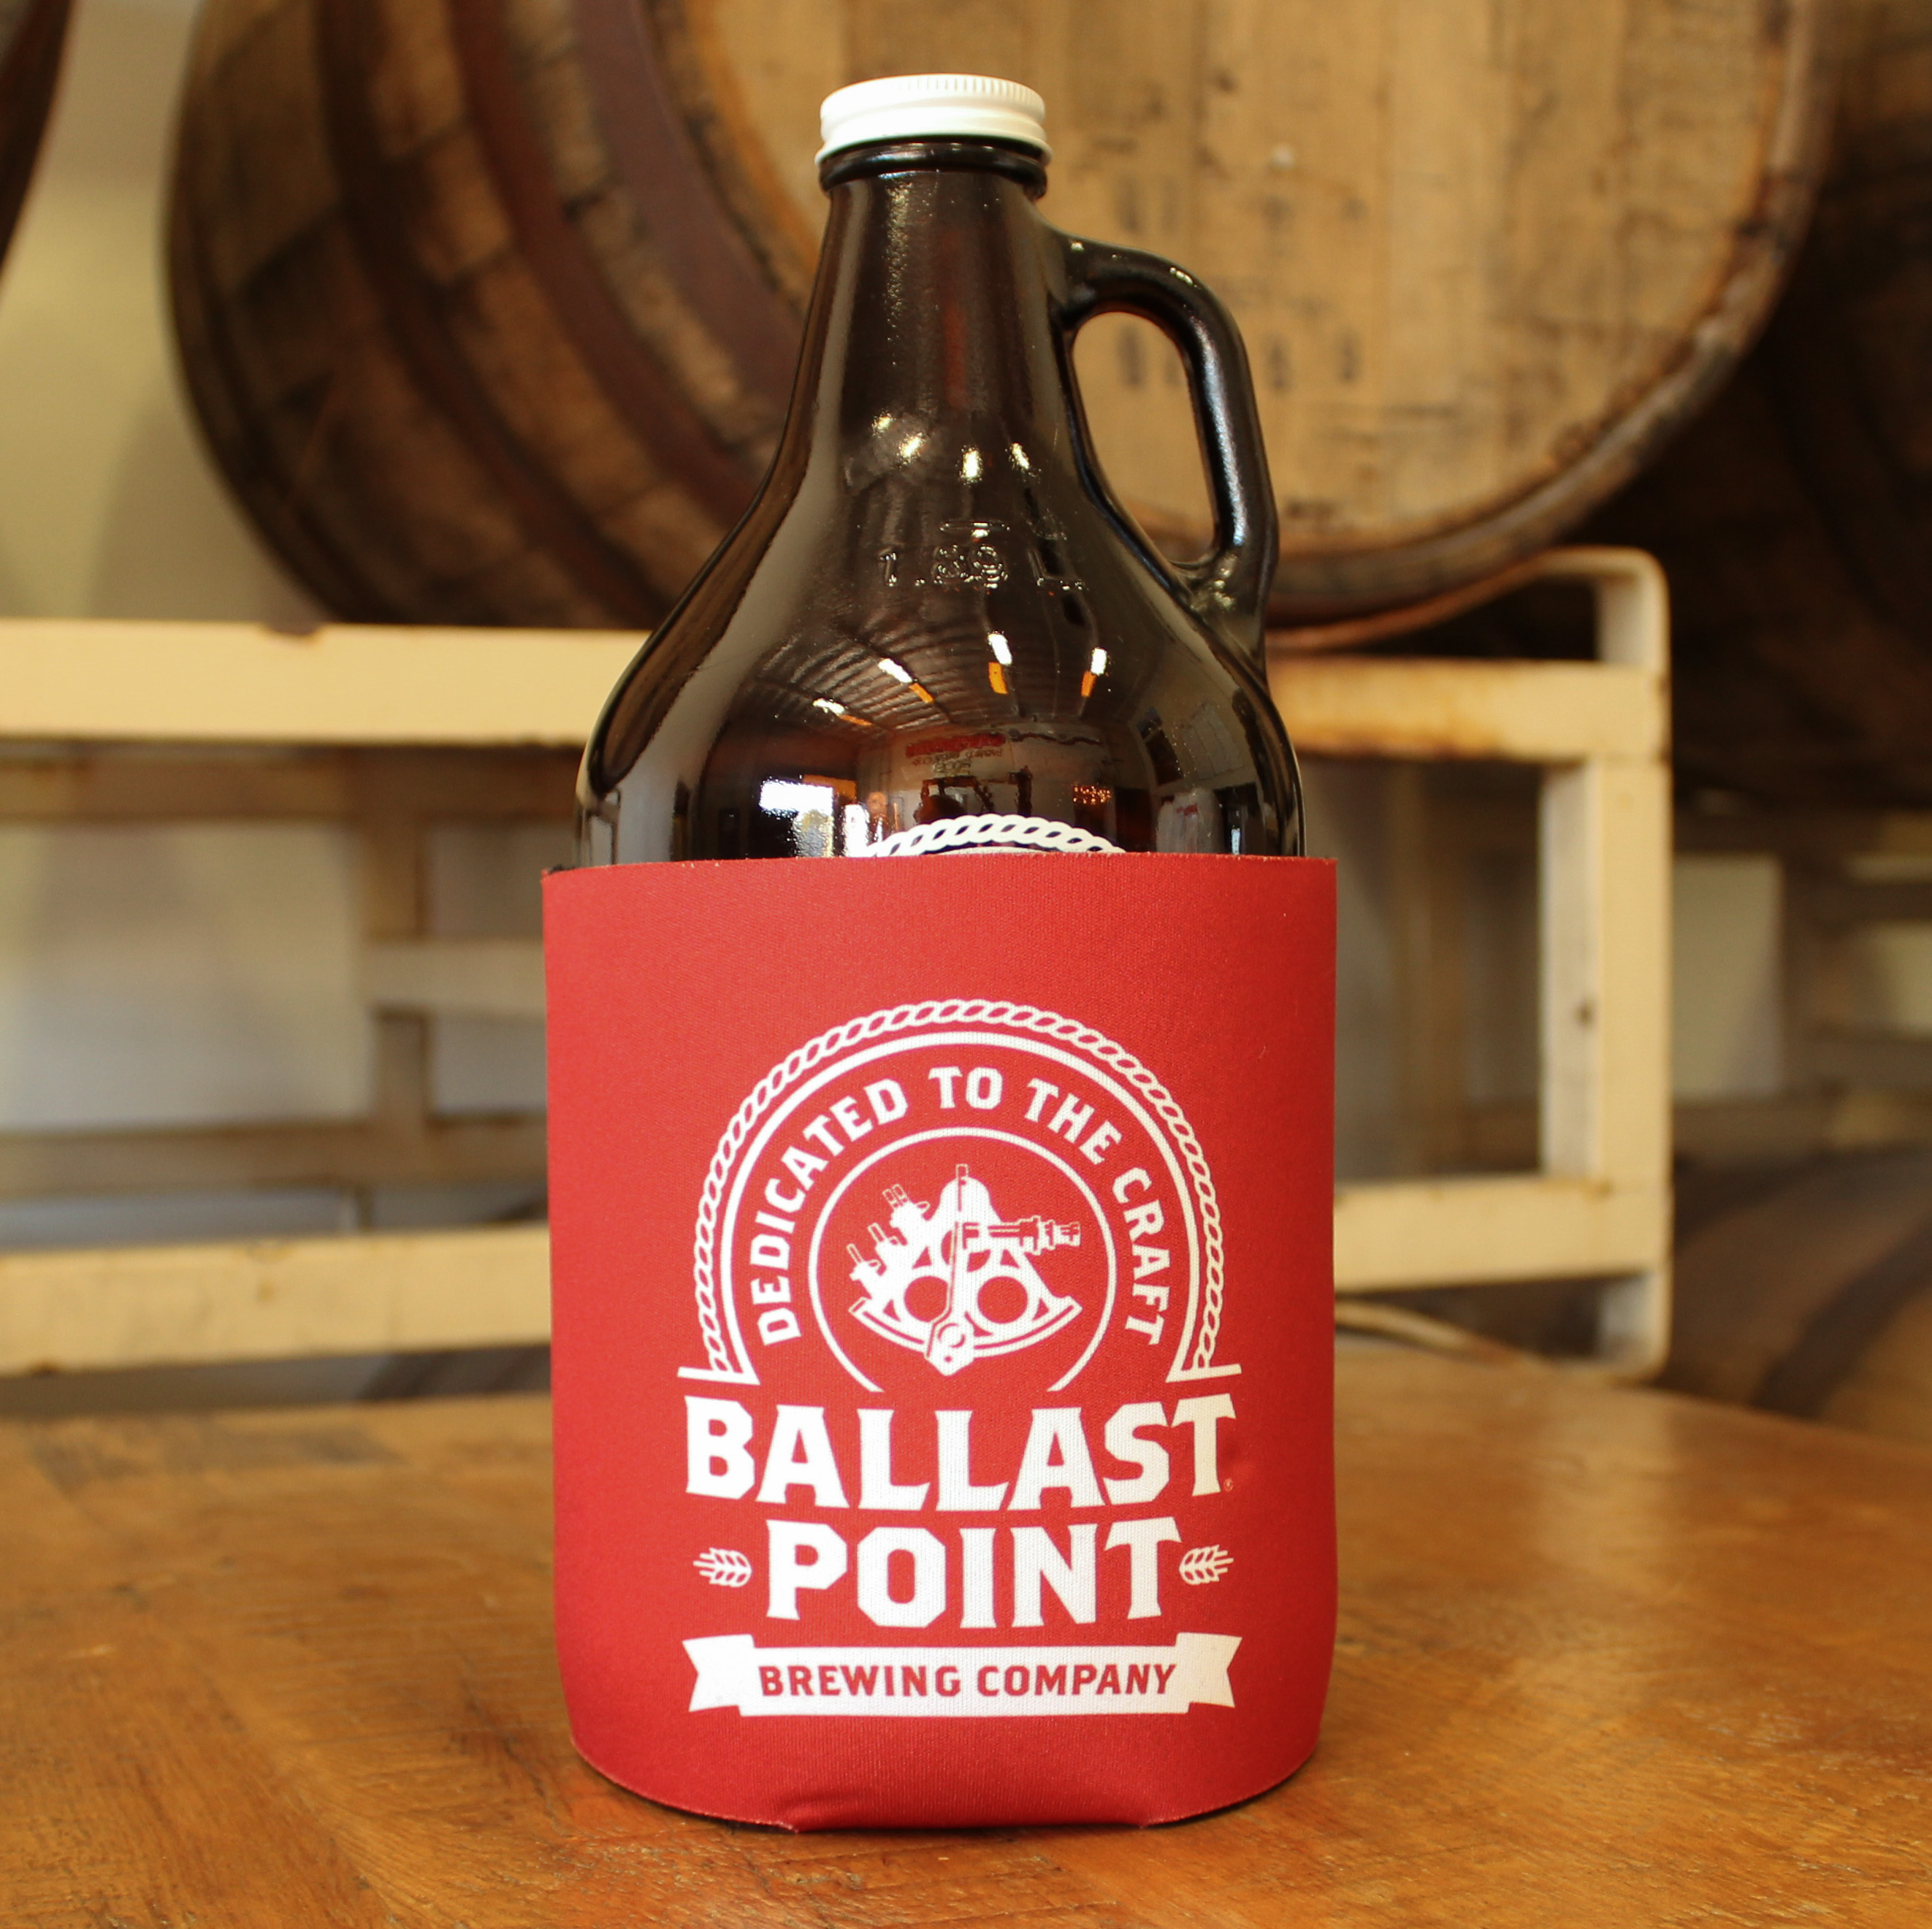 Ballast Point 64oz Growler Koozie